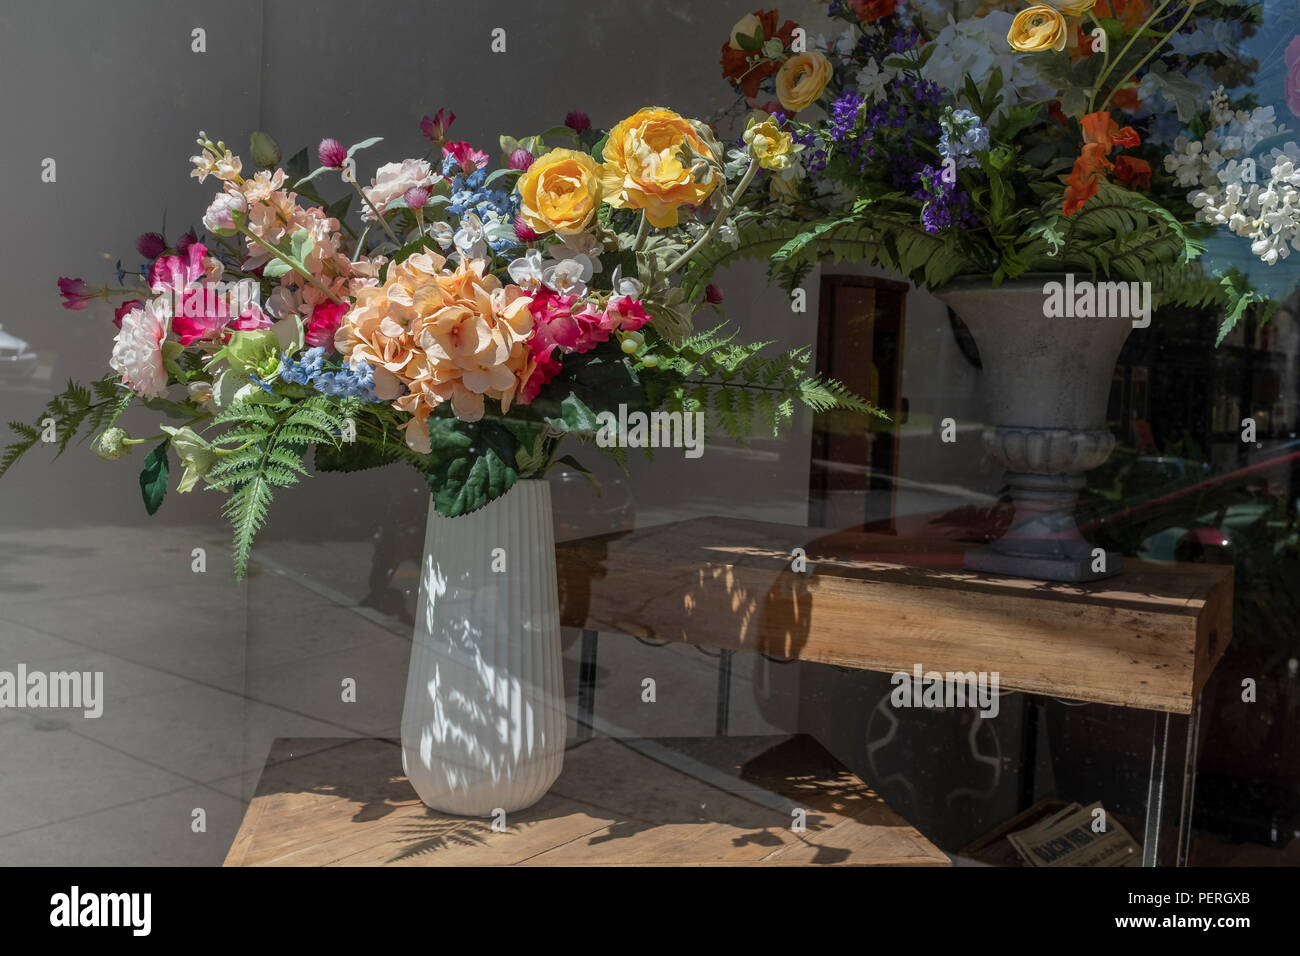 Alamy & Flower Vases Artificial Flowers Stock Photos \u0026 Flower Vases ...